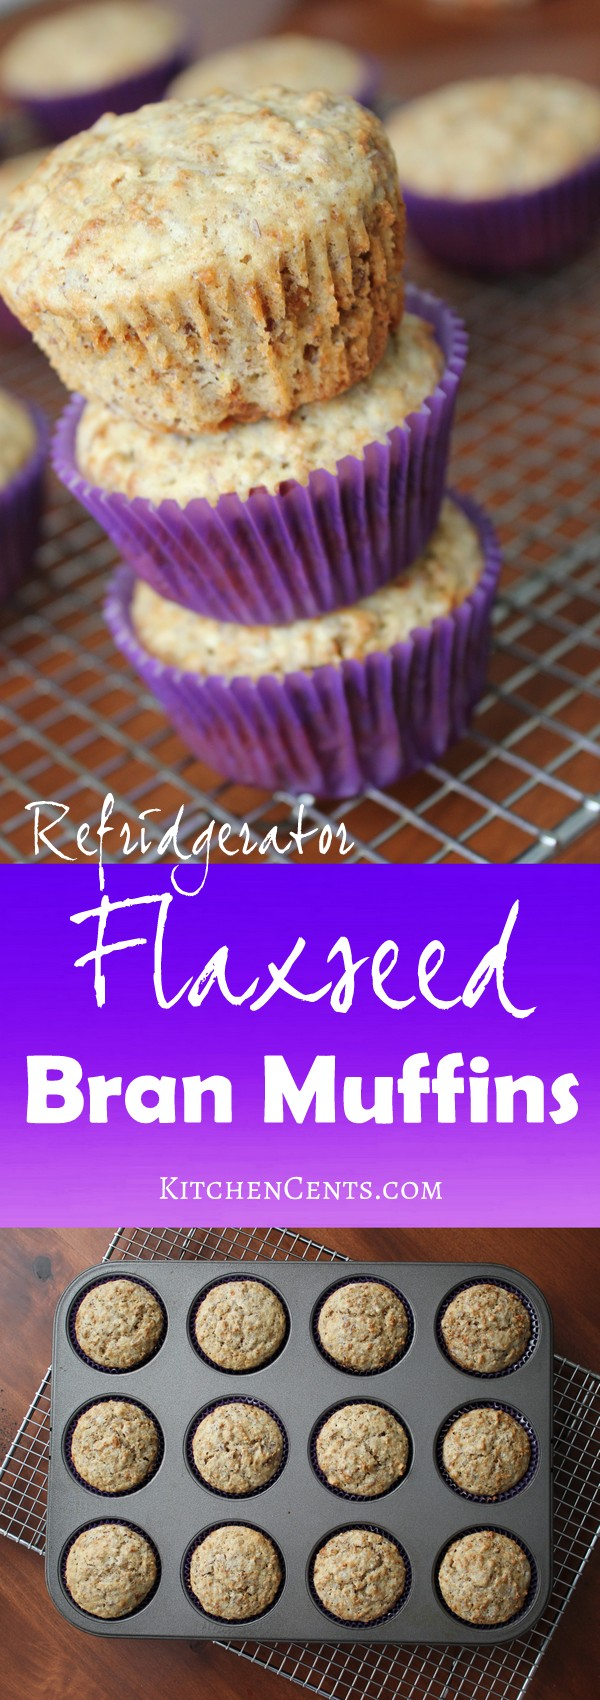 refridgerator-flaxseed-bran-muffins | KitchenCents.com